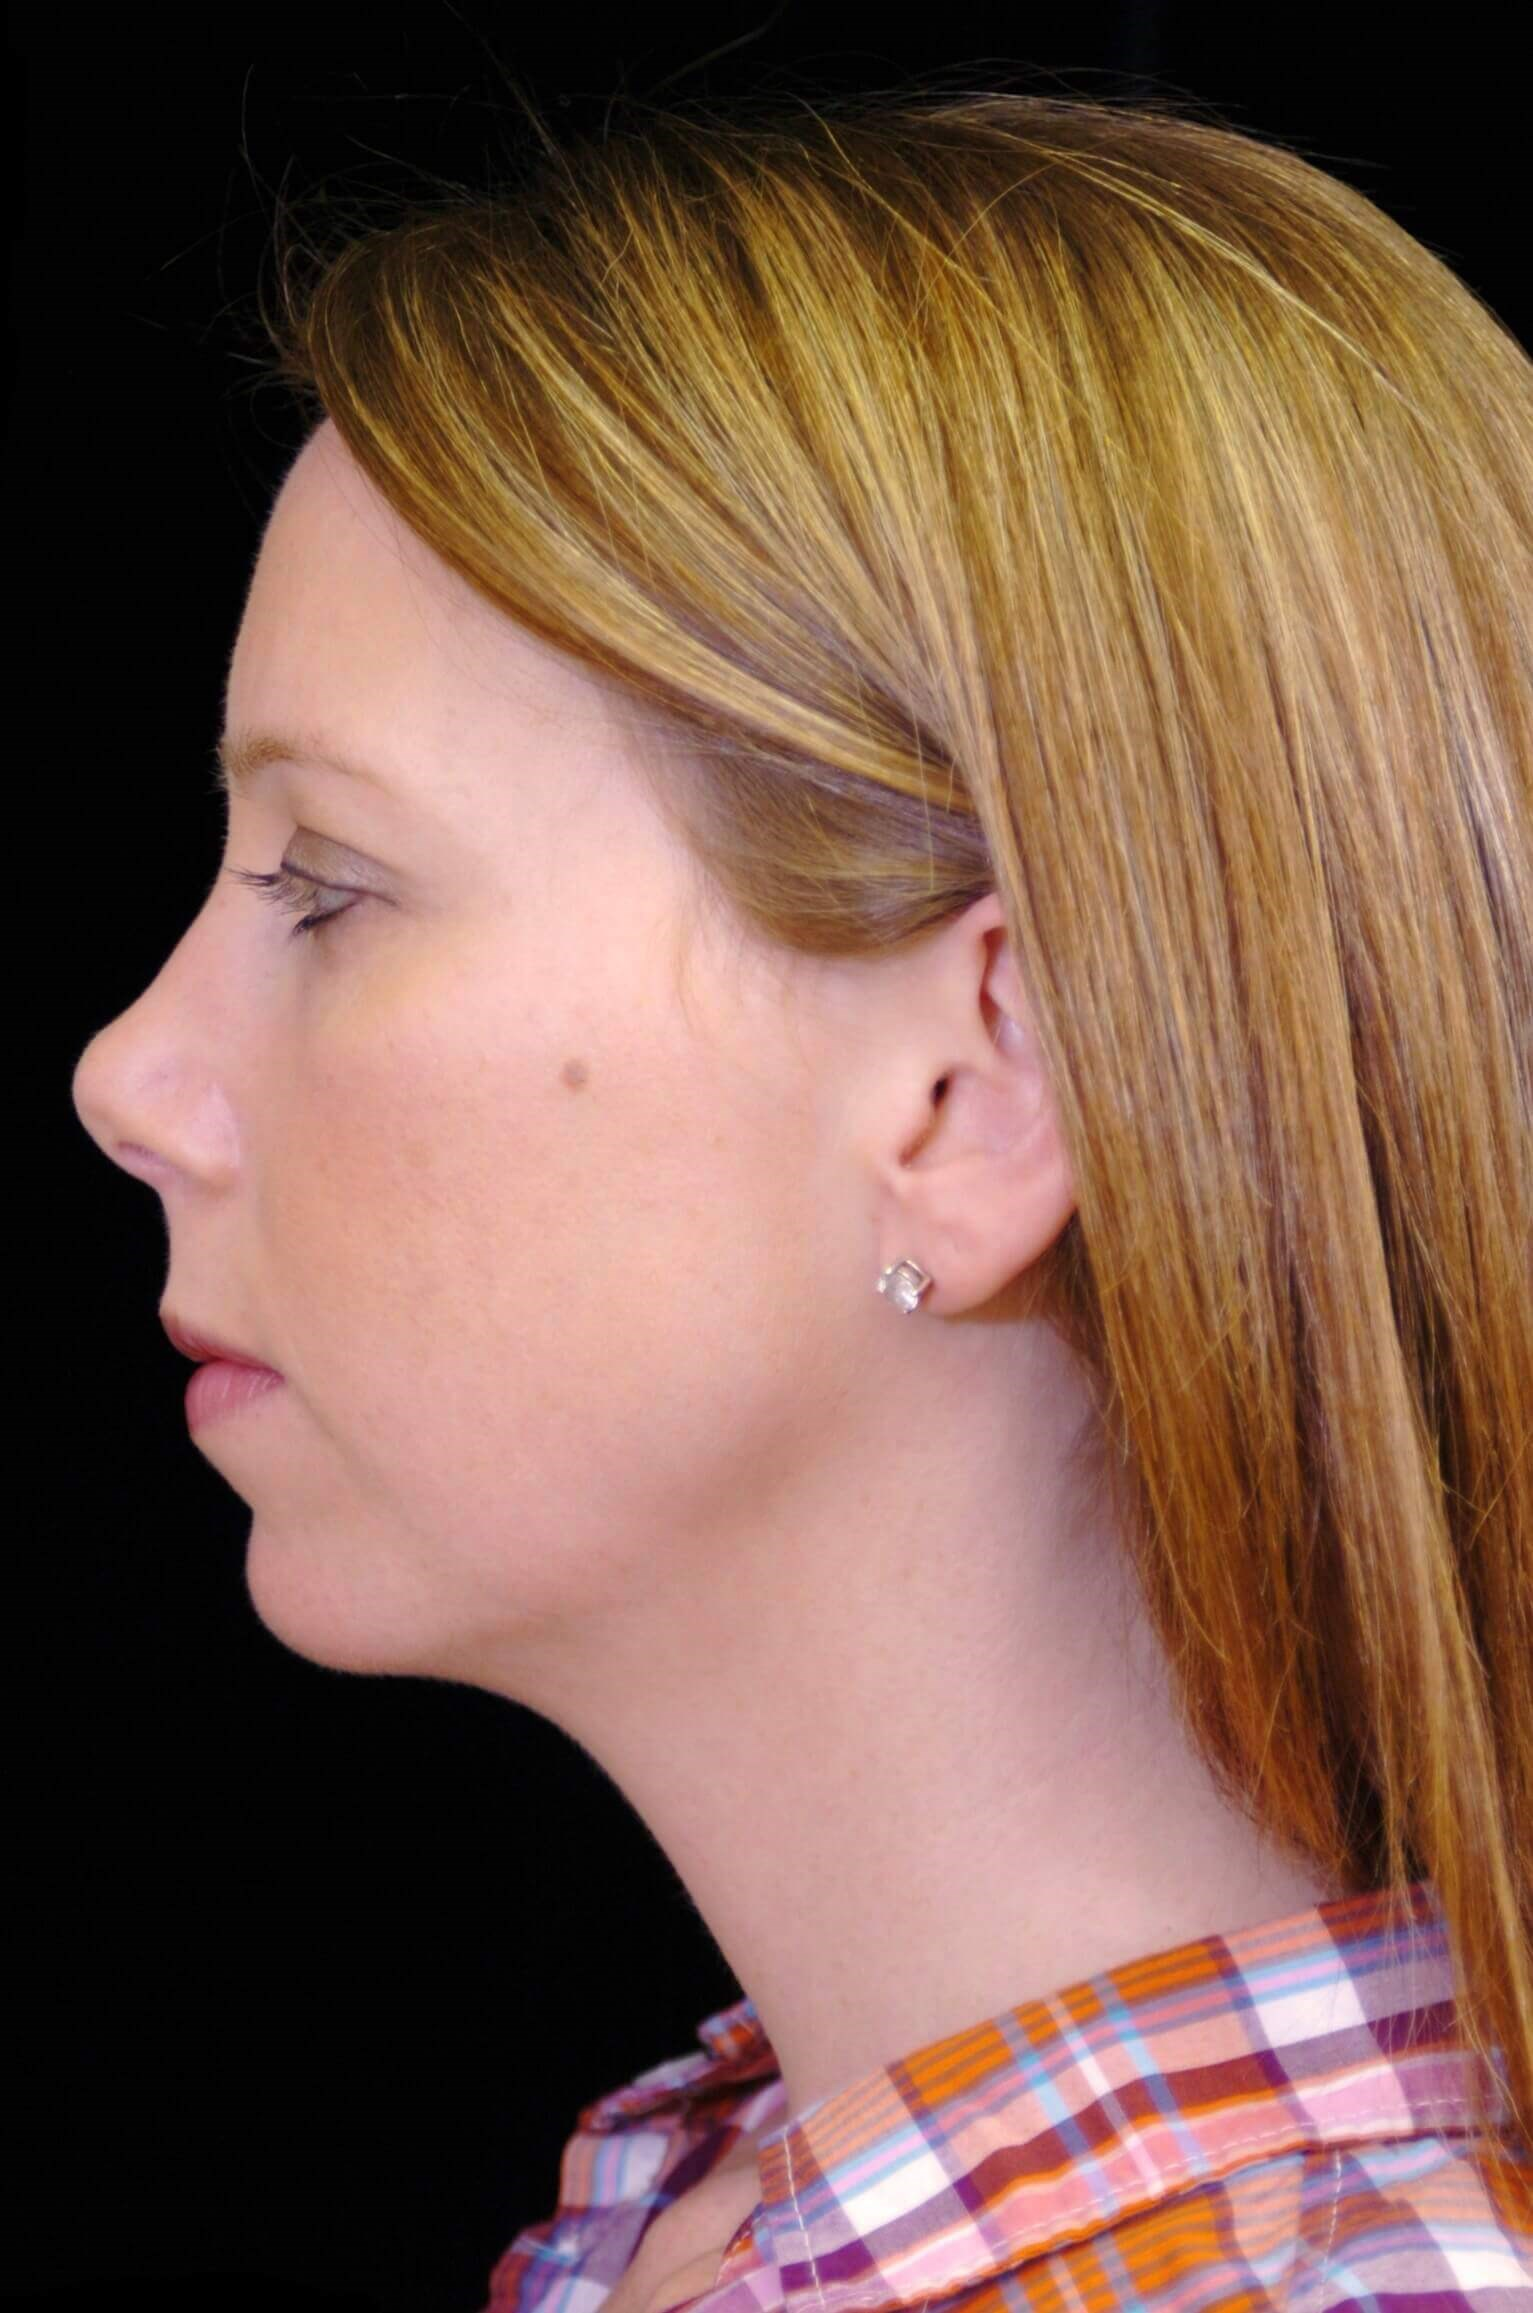 PLANO WOMAN ENHANCES PROFILE BY AUGMENTING CHIN WITH A CHIN IMPLANT